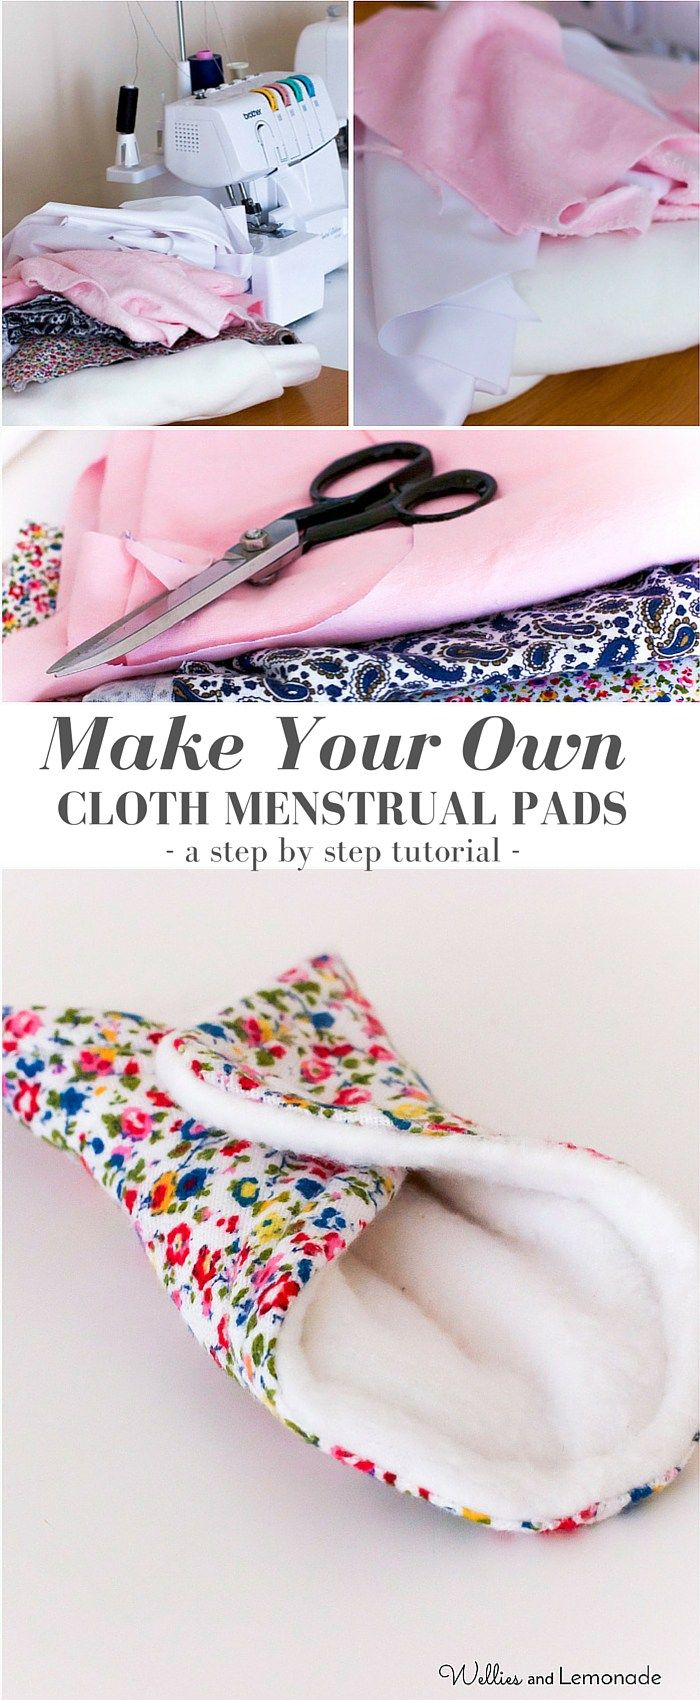 how to use menstrual pads